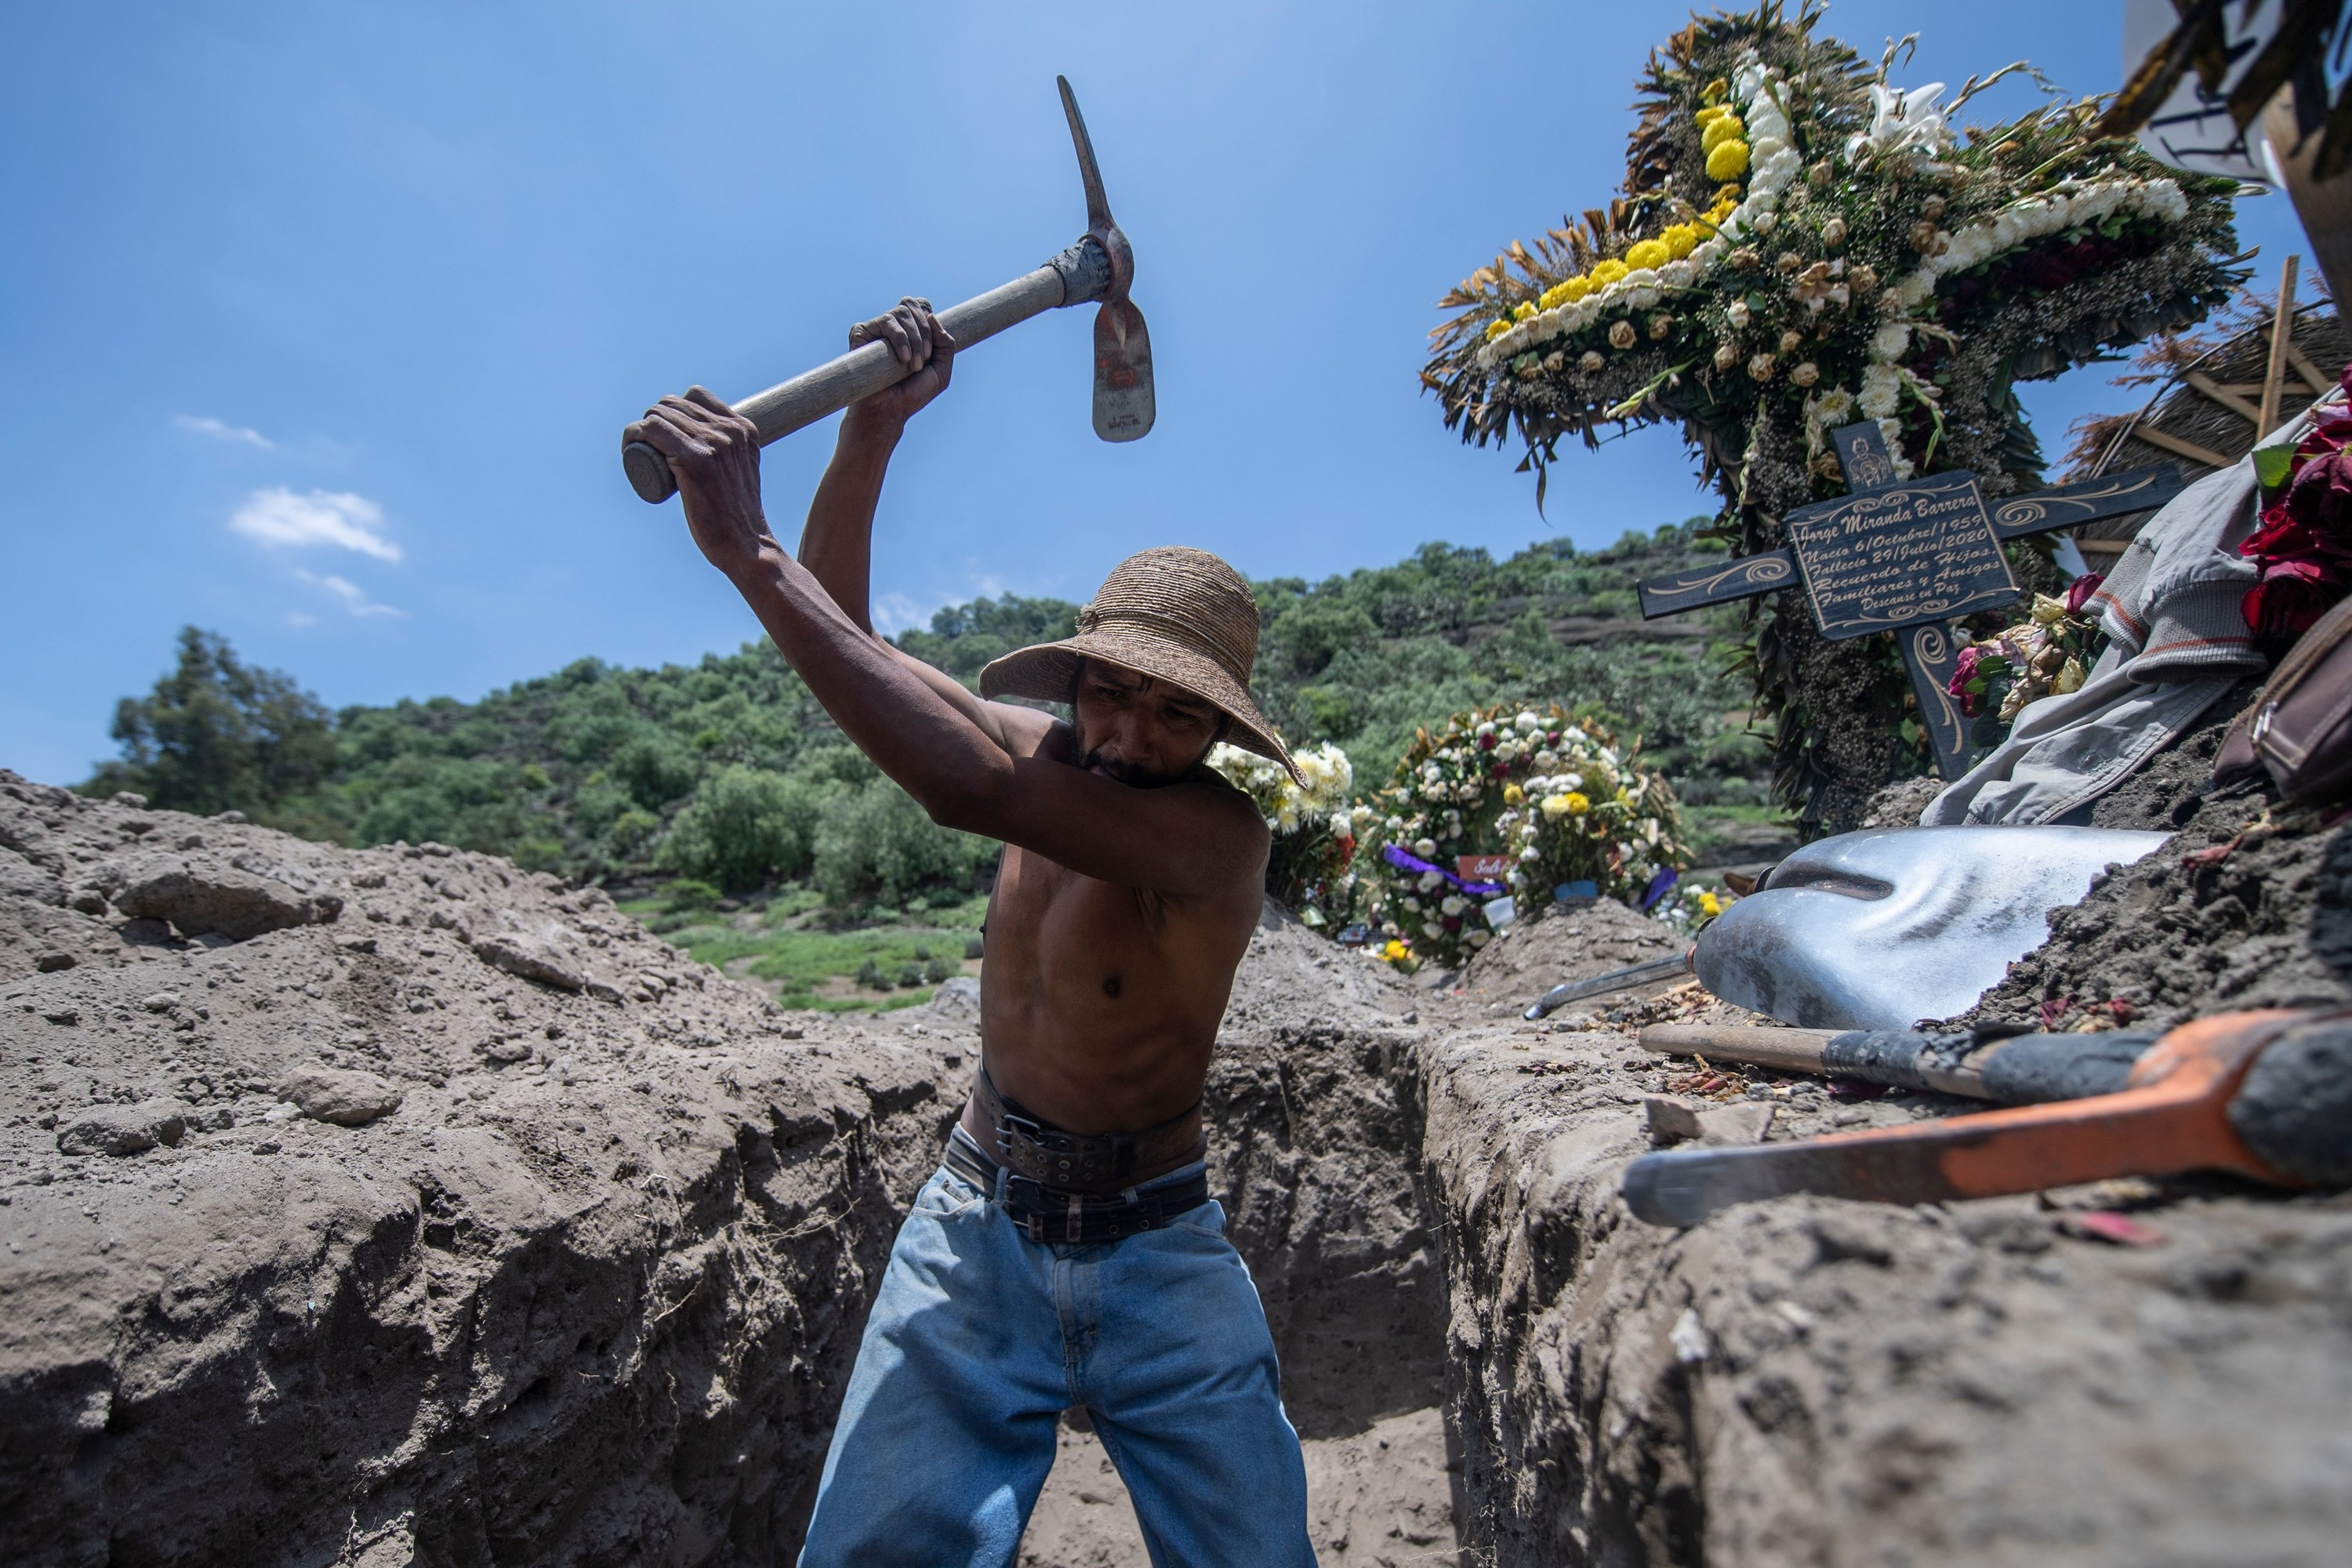 A shirtless man wearing jeans and a sombrero swings a pickax in a grave surrounded by wreaths of flowers